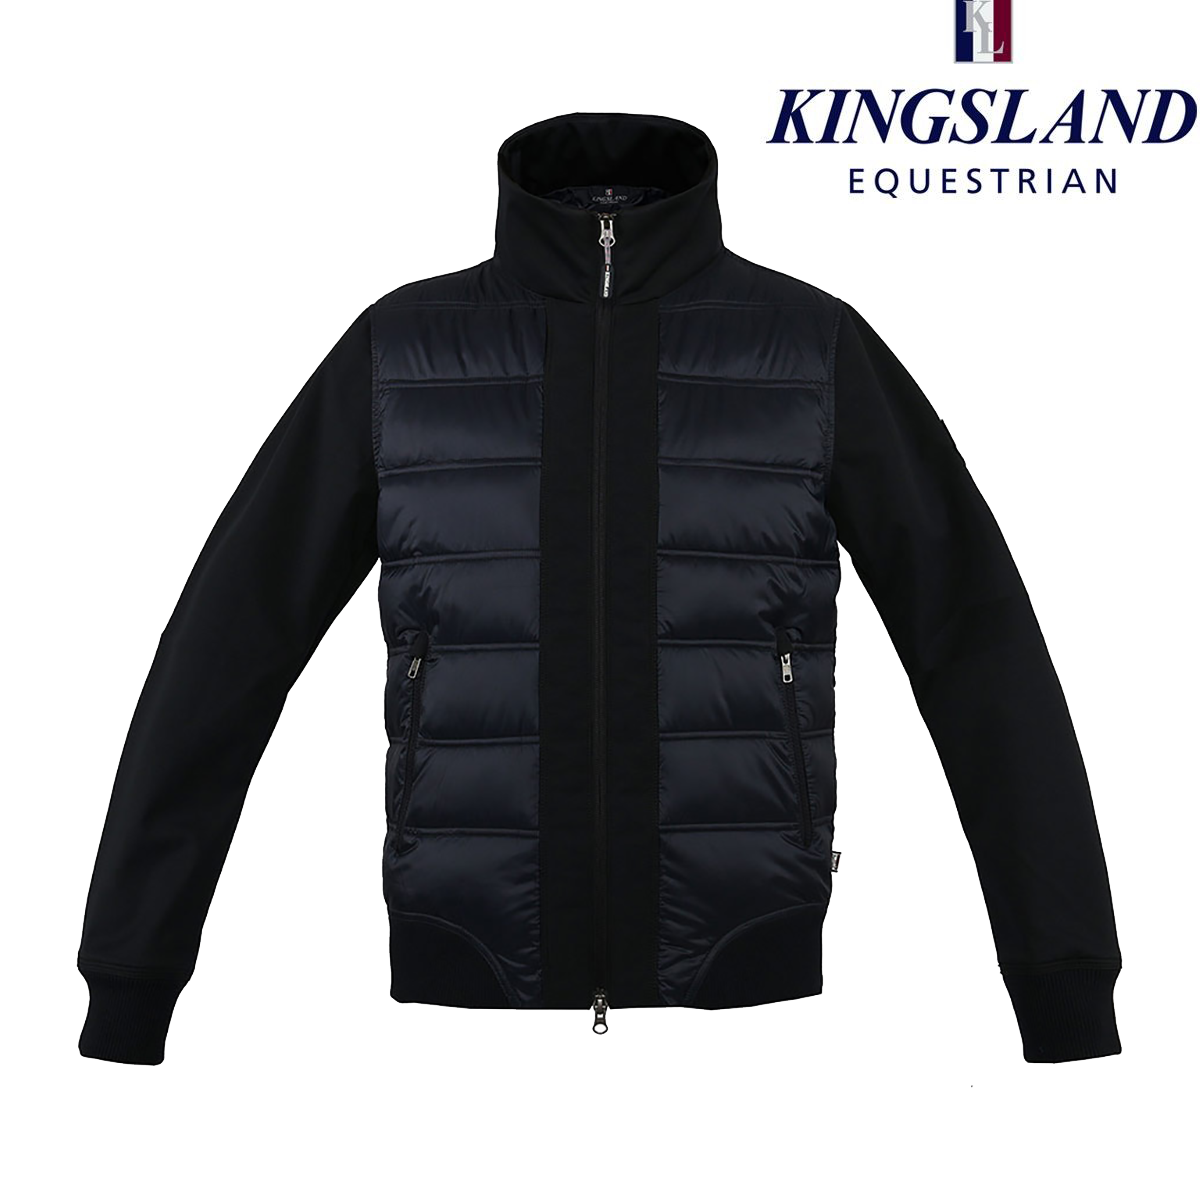 Kingsland Amsterdam Jacket dark navy Blau Größe XS UK 6 ladies padded coat